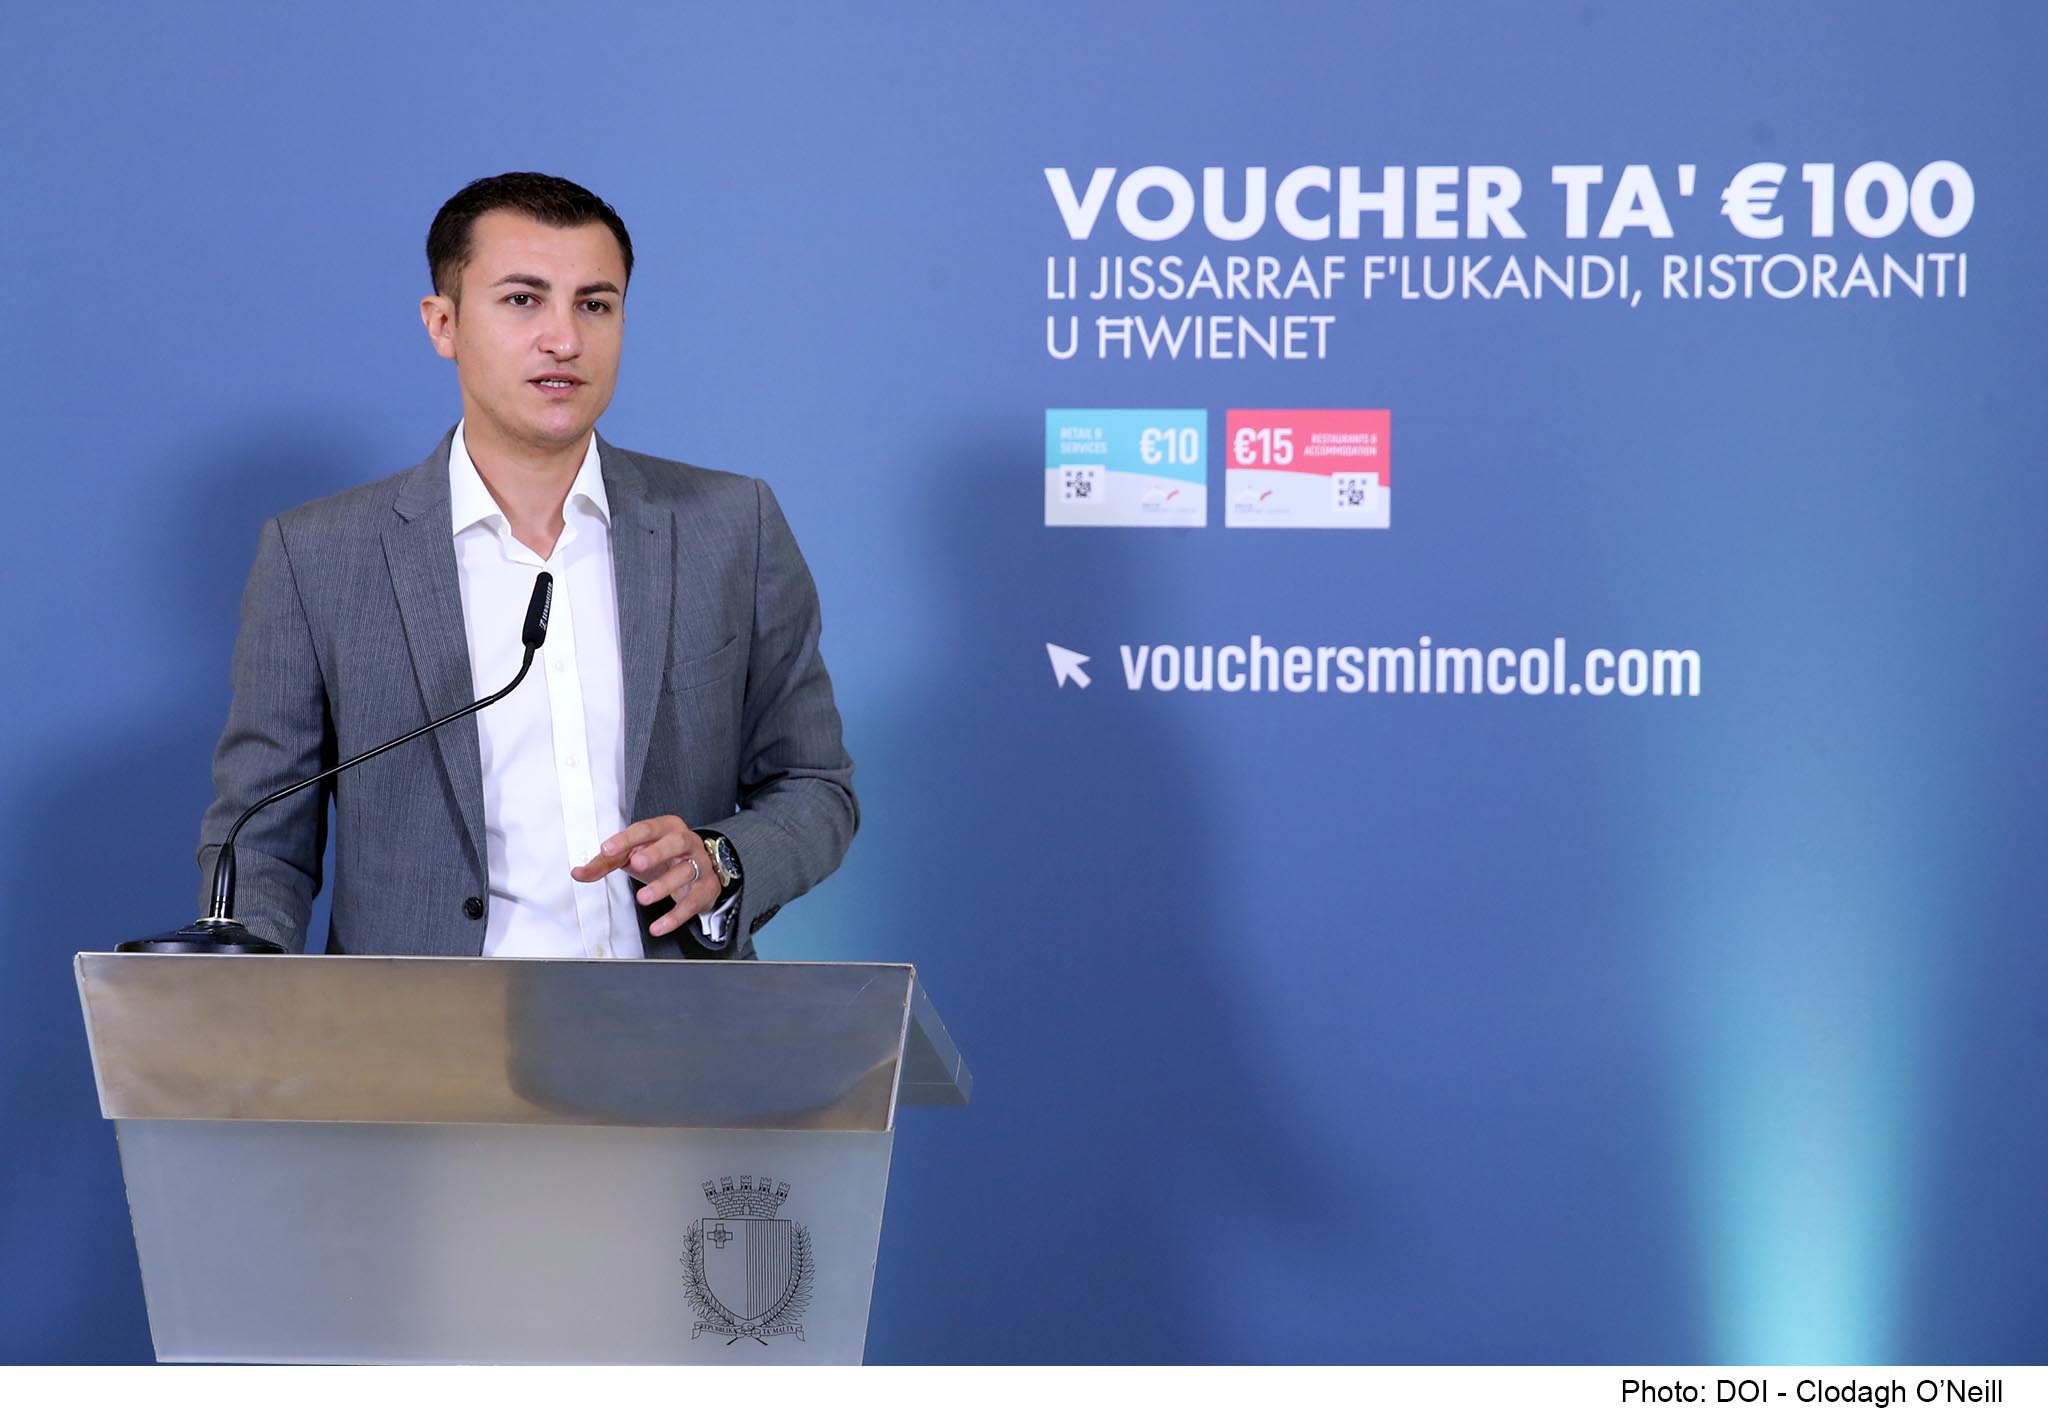 PRESS RELEASE BY THE MINISTRY FOR THE ECONOMY AND INDUSTRY: More than €16 million in vouchers have already been redeemed through 500,000 transactions